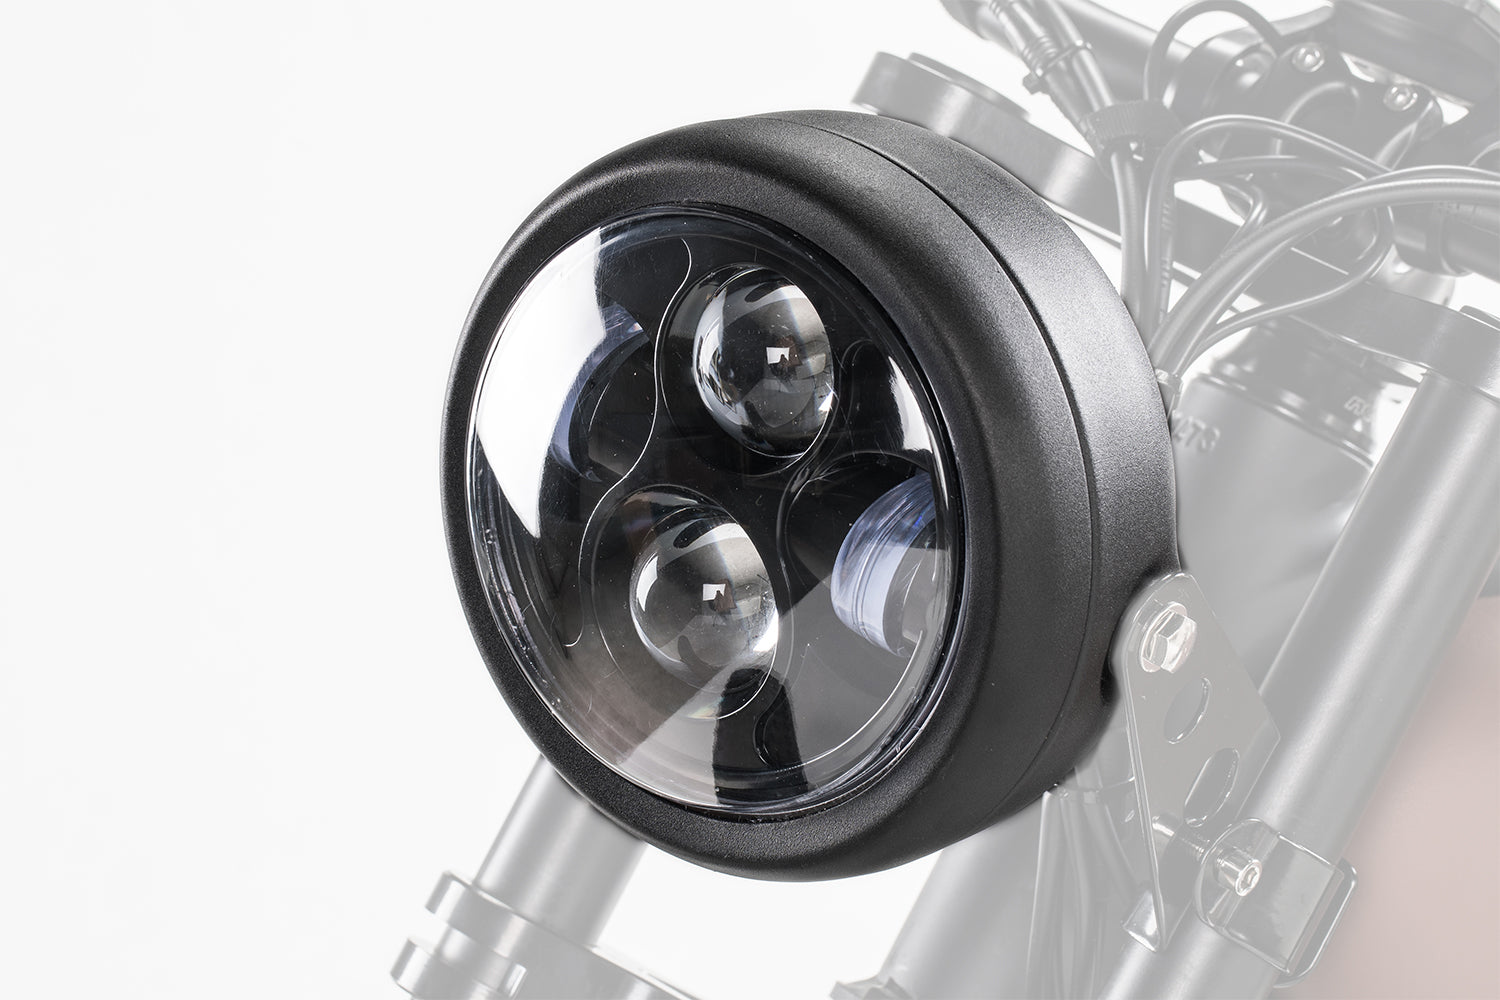 2020 Cheetah Head Light